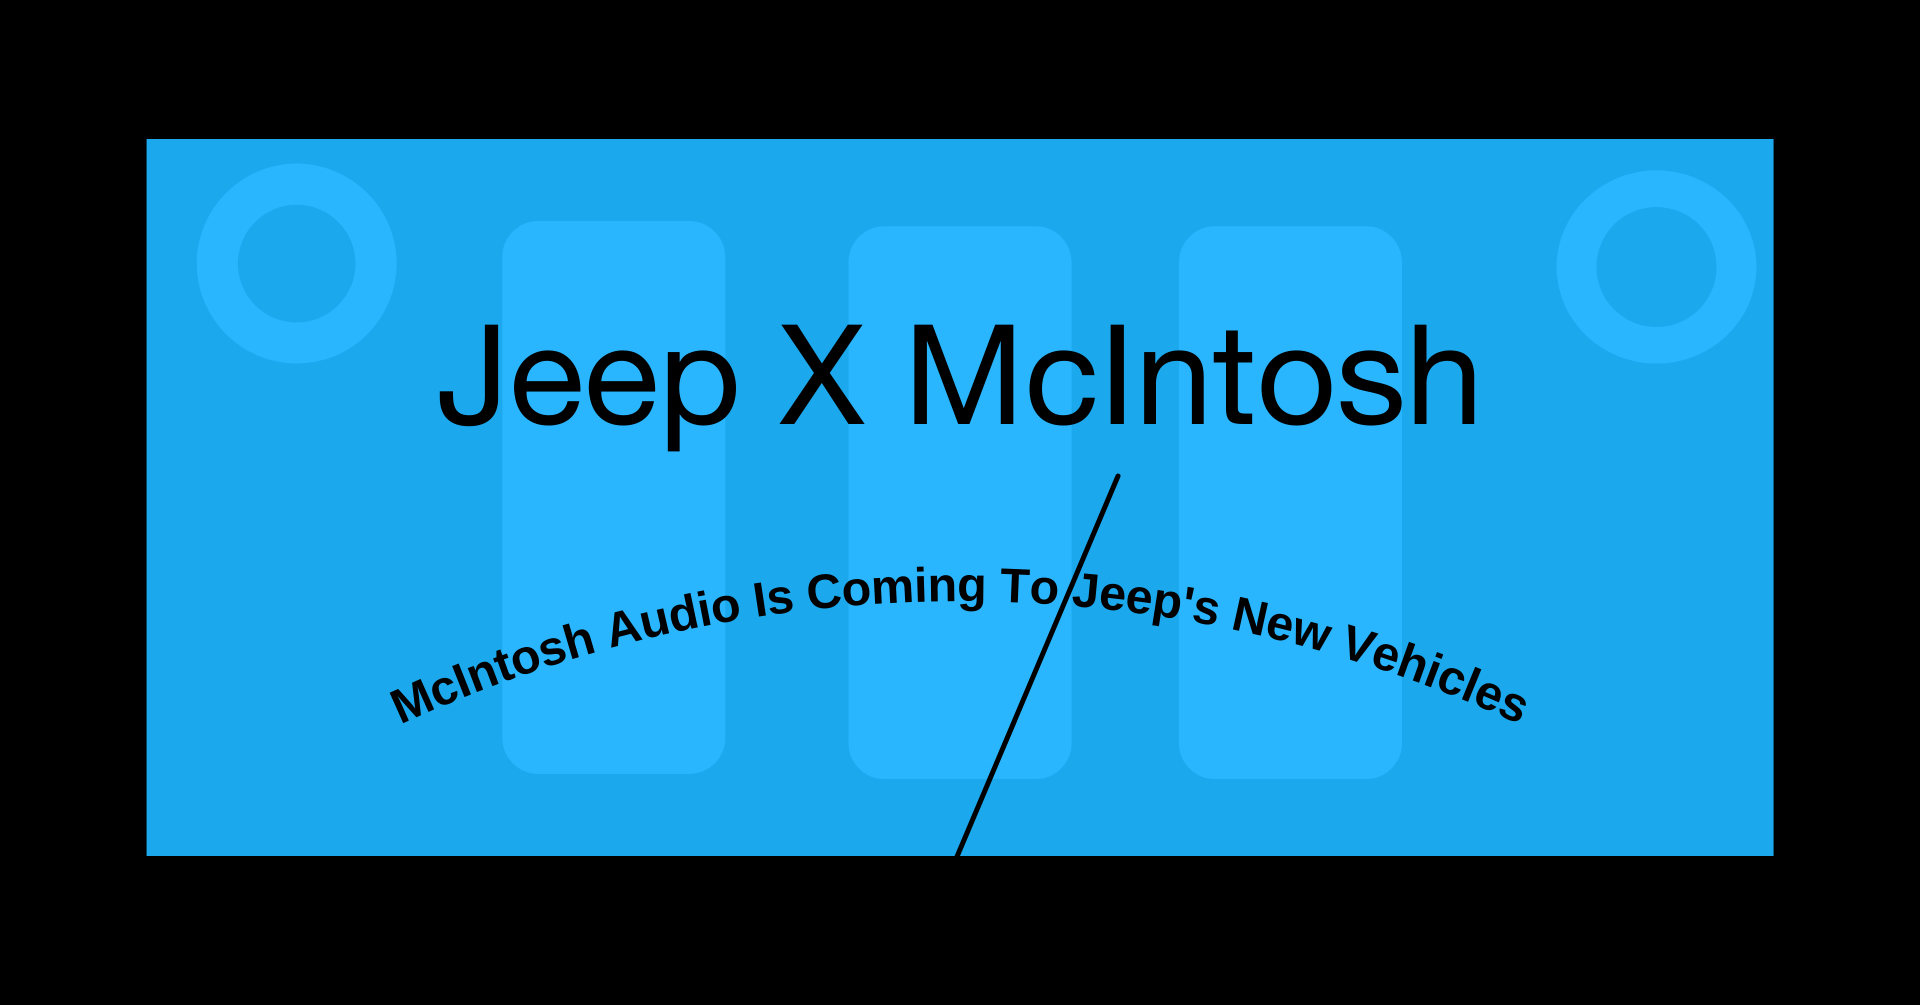 McIntosh Audio Is Coming To Jeep's New Vehicles